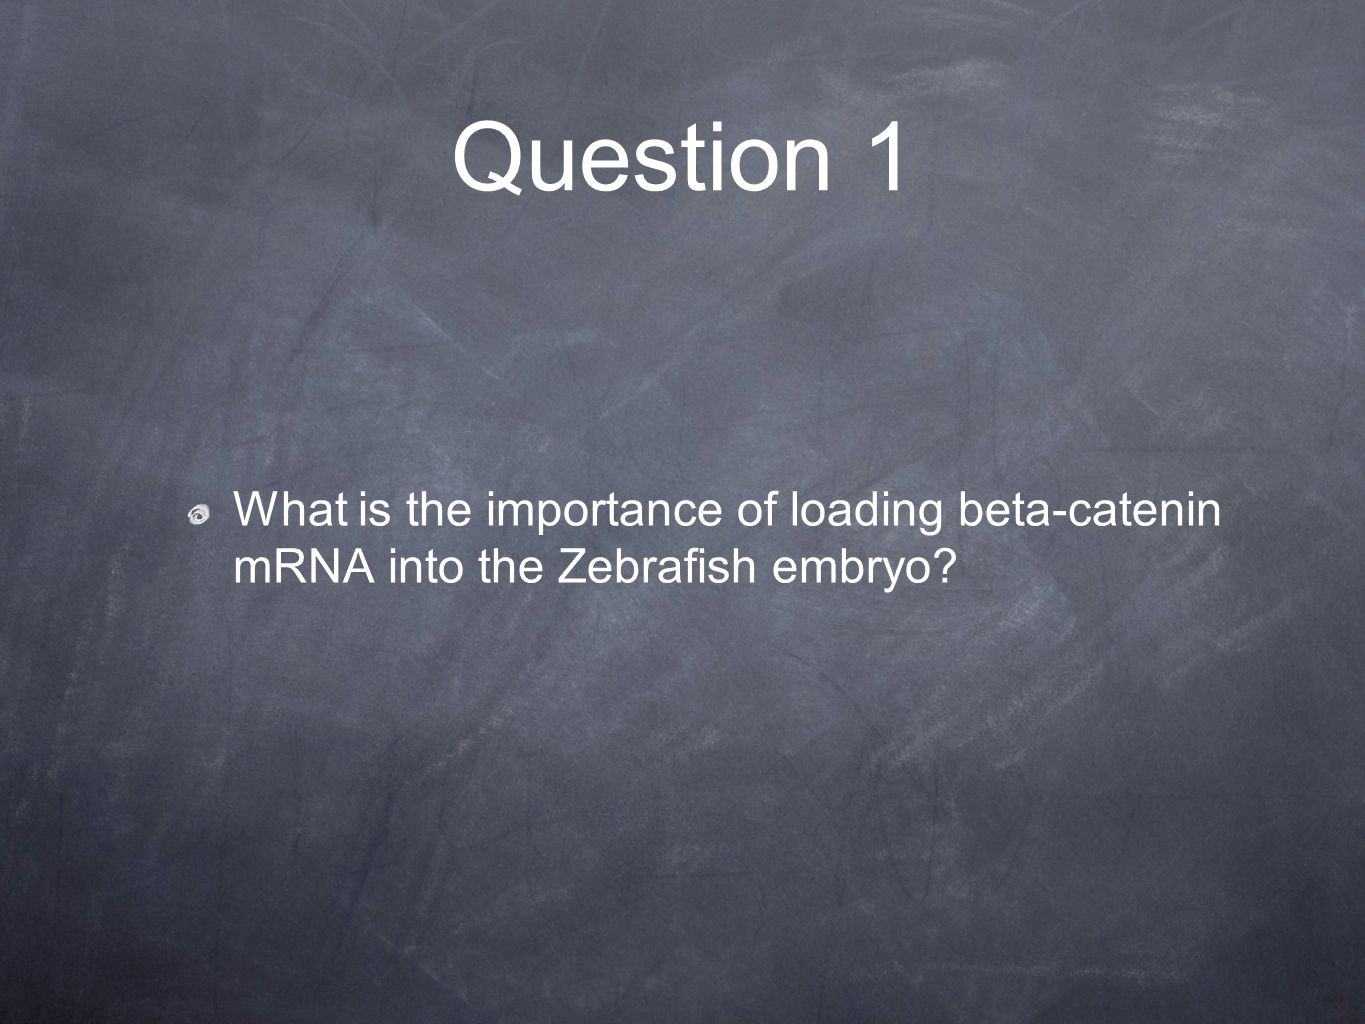 Question 1 What is the importance of loading beta-catenin mRNA into the Zebrafish embryo